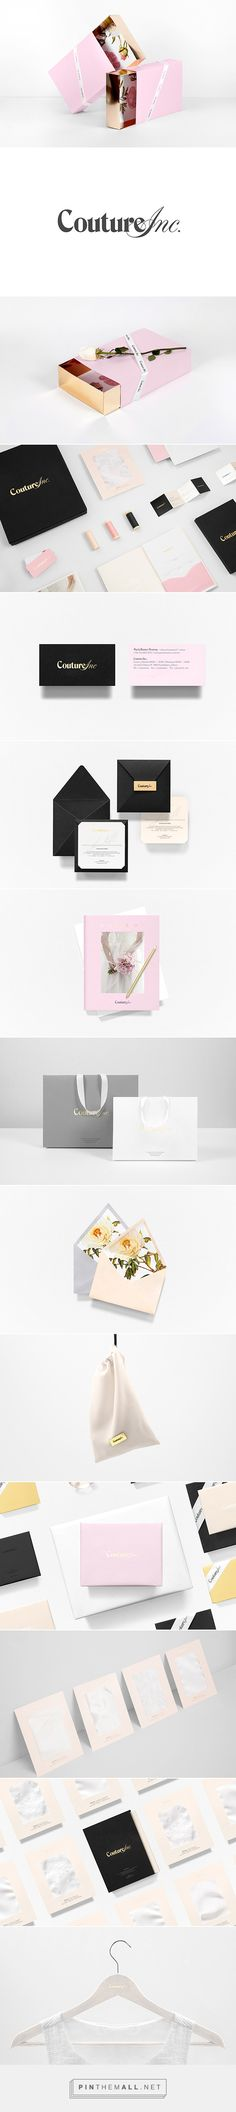 Couture Inc. on Behance by Anagrama curated by Packaging Diva PD. Branding work by one of my favorite packaging designers.